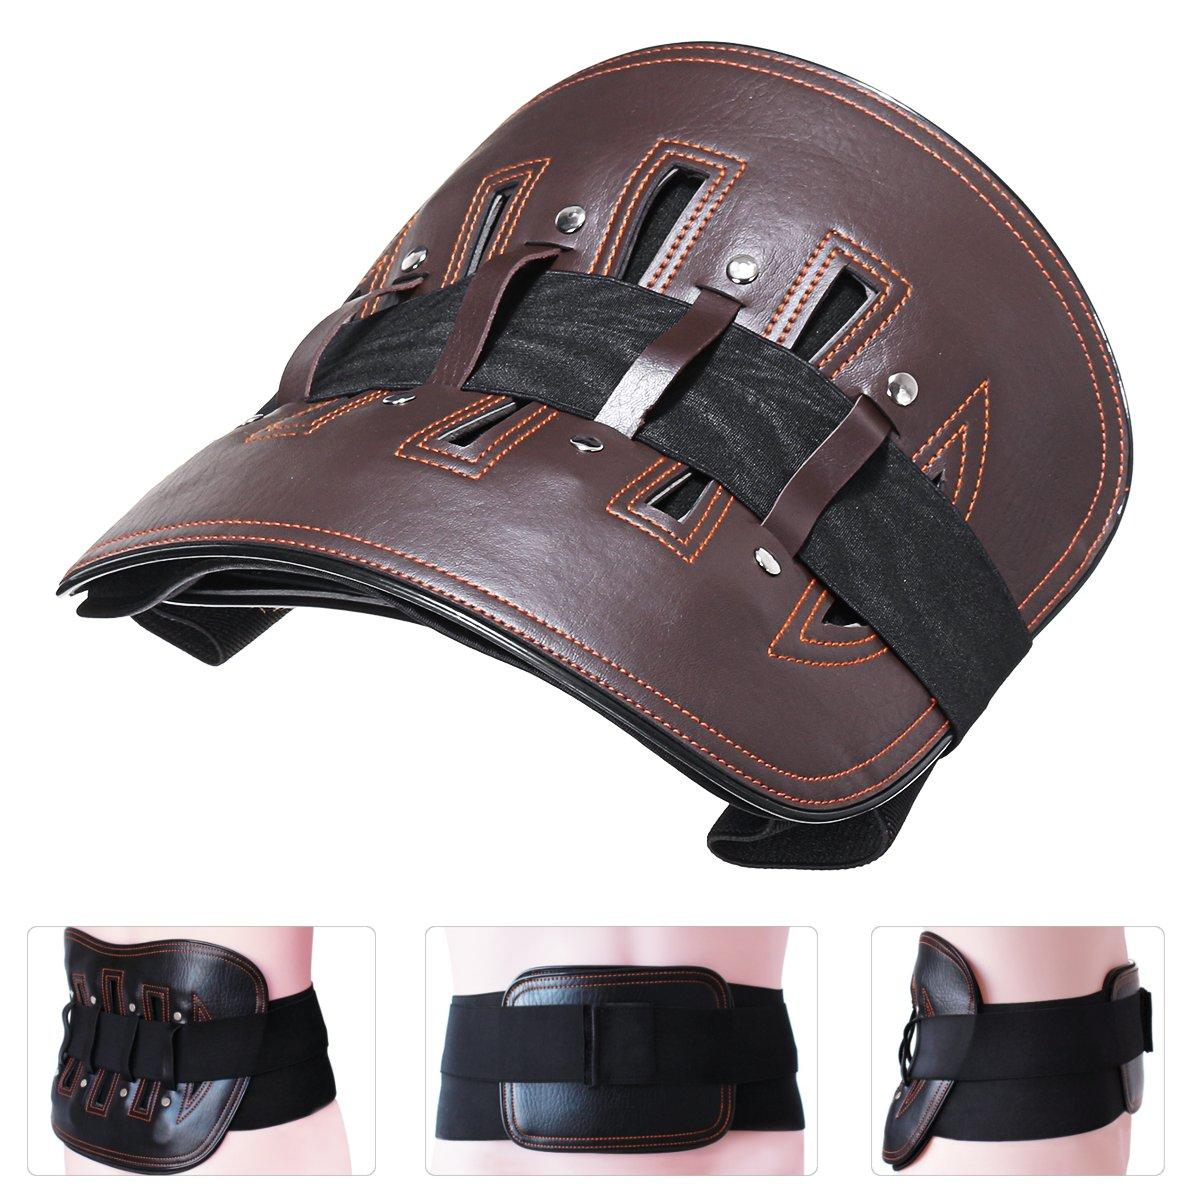 Self Heating Waist Belt Lumbar Disc Therapy Brace Spine Protector Relieve Back Muscle Fatigue